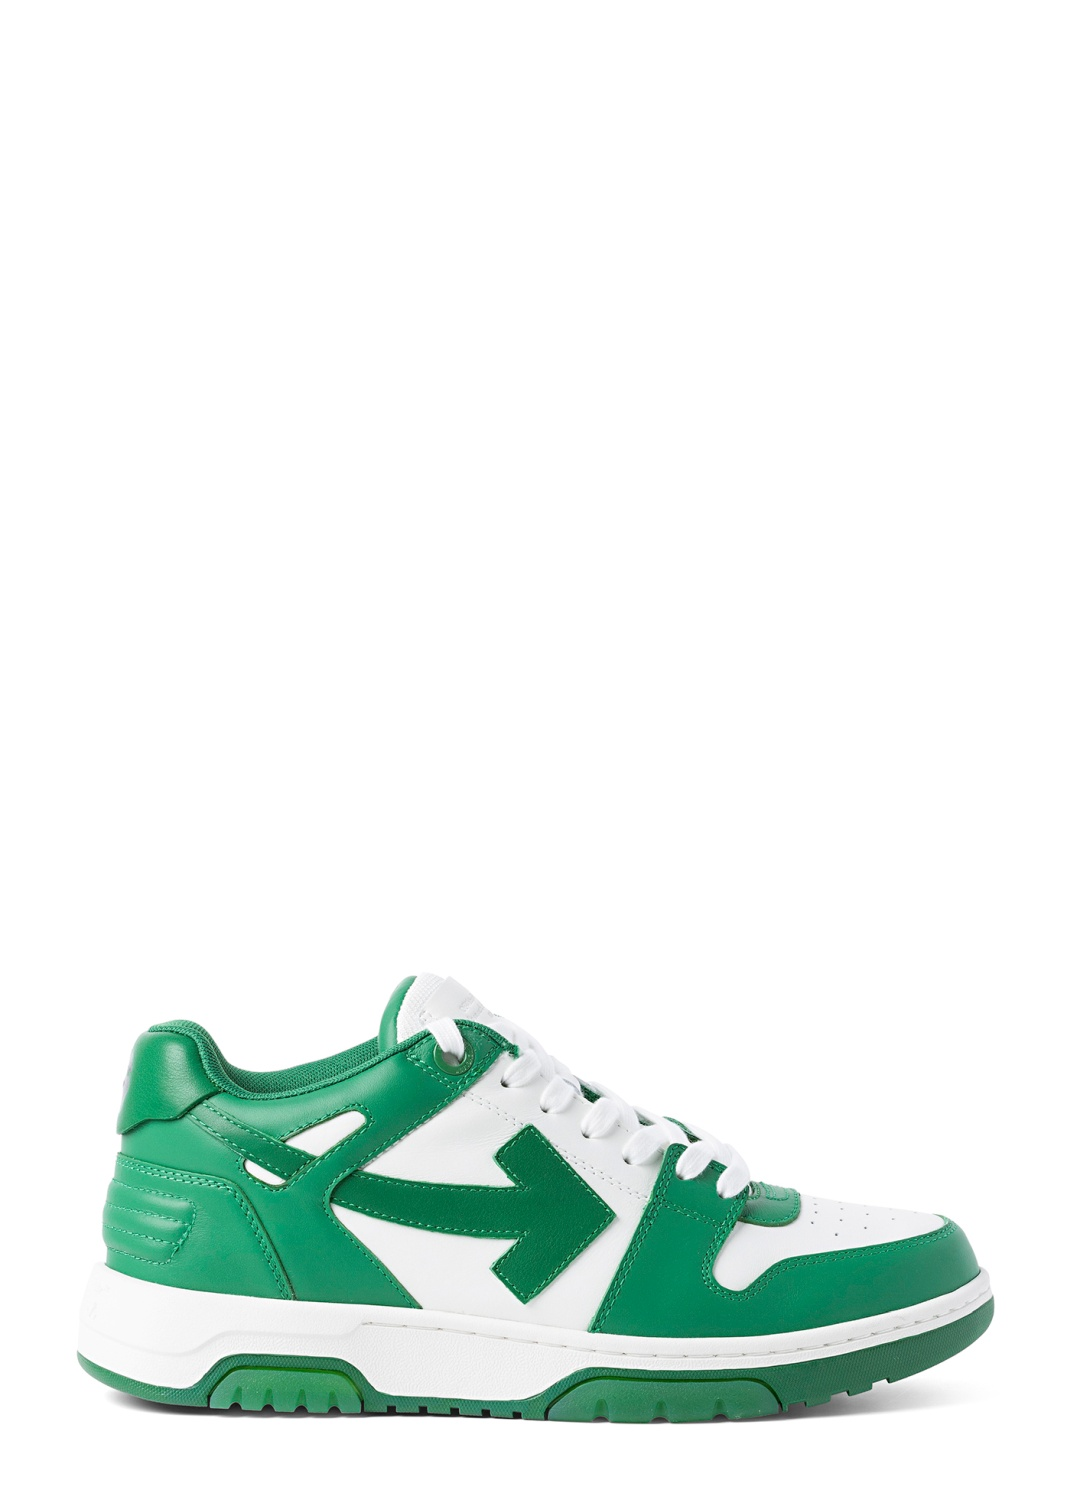 OUT OF OFFICE CALF LEATHER WHITE GREEN image number 0